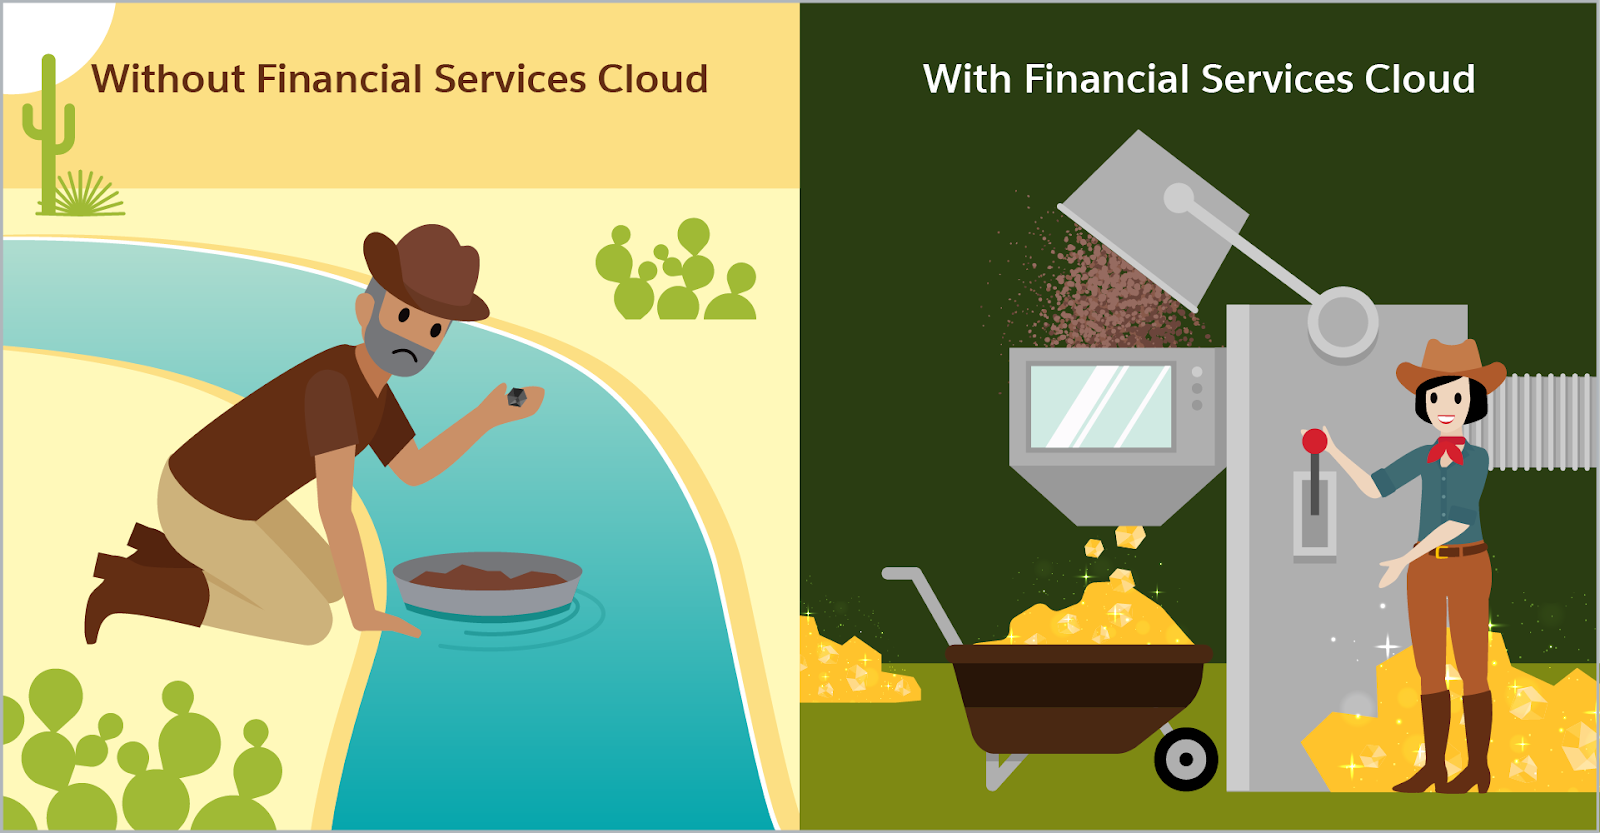 Side-by-side images. The left image is a gold miner panning for gold in a river in the desert. He looks disappointed as he has found no gold. The right image is a tech-savvy miner. She is happily using a machine that quickly sifts through the rubble to find giant pieces of gold.